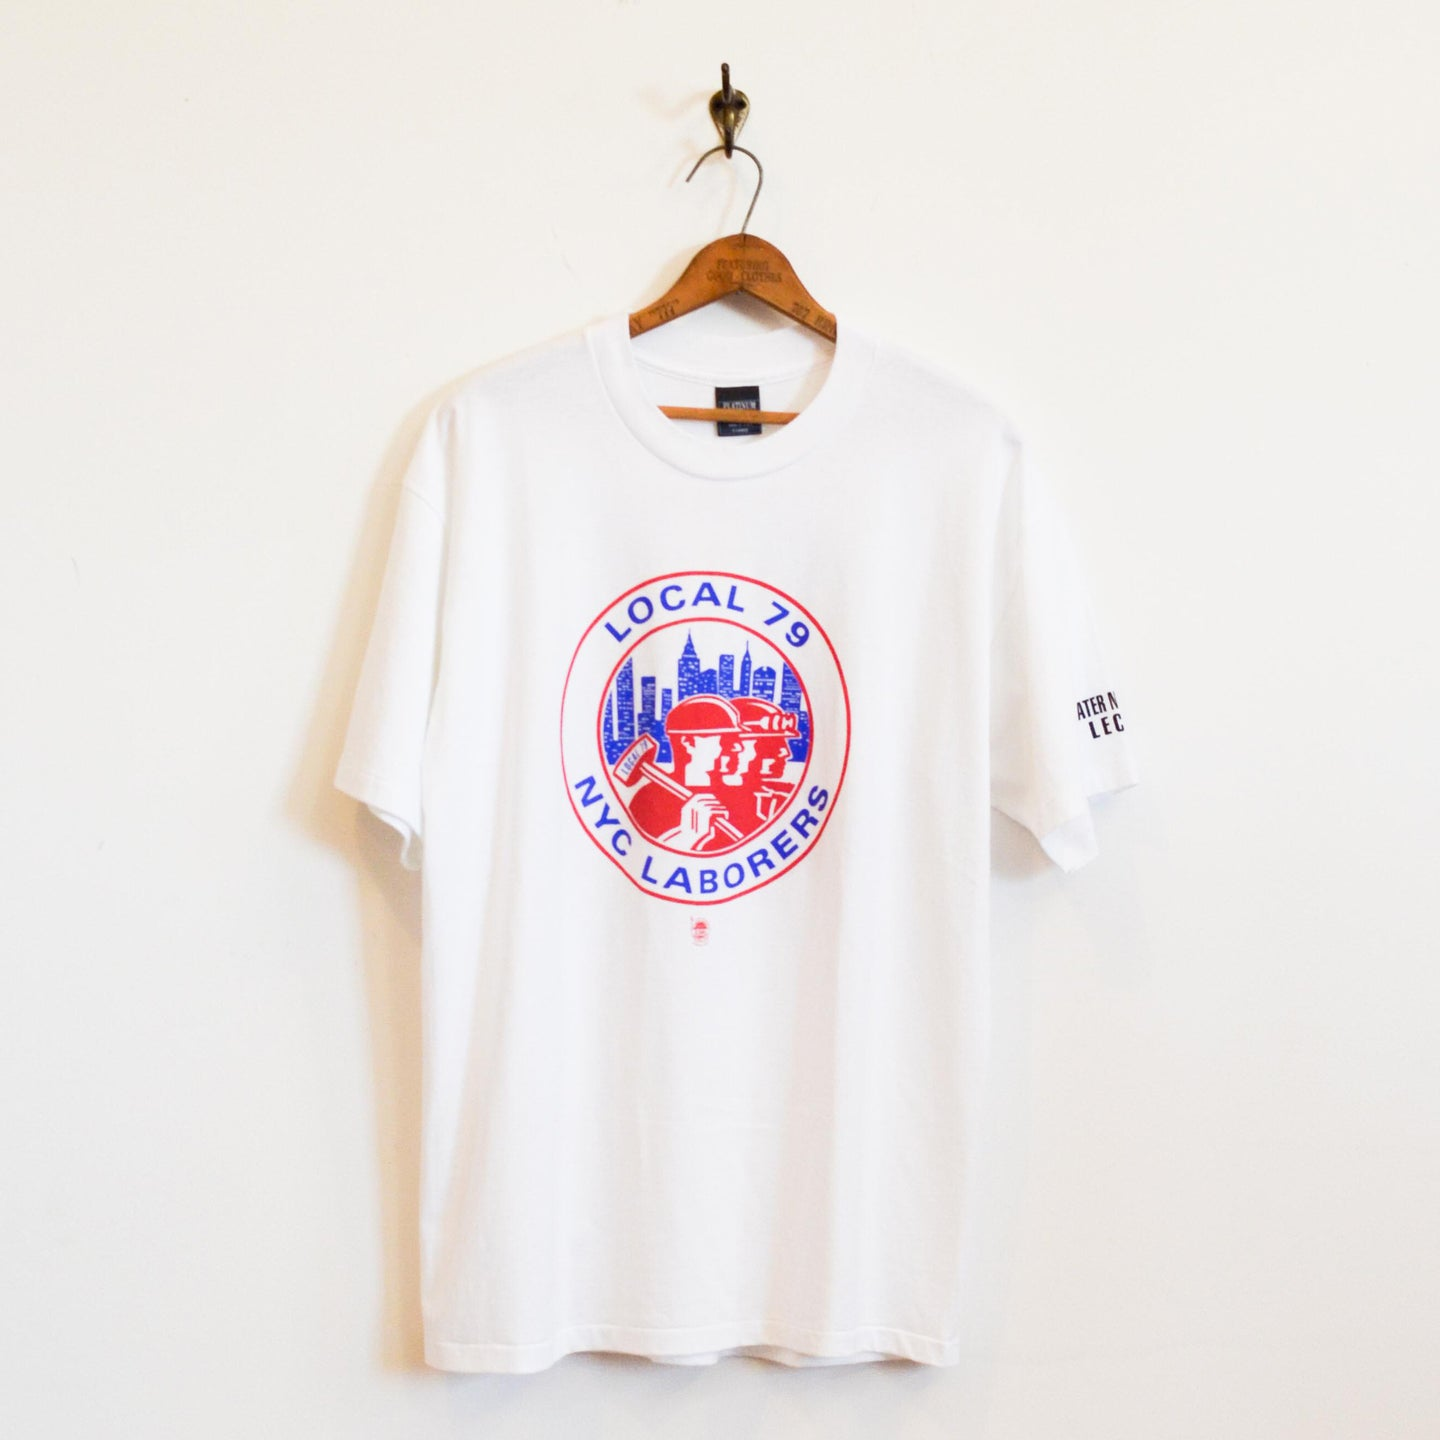 Platinum Plus - Local 79 NYC Laborers Tee shirt